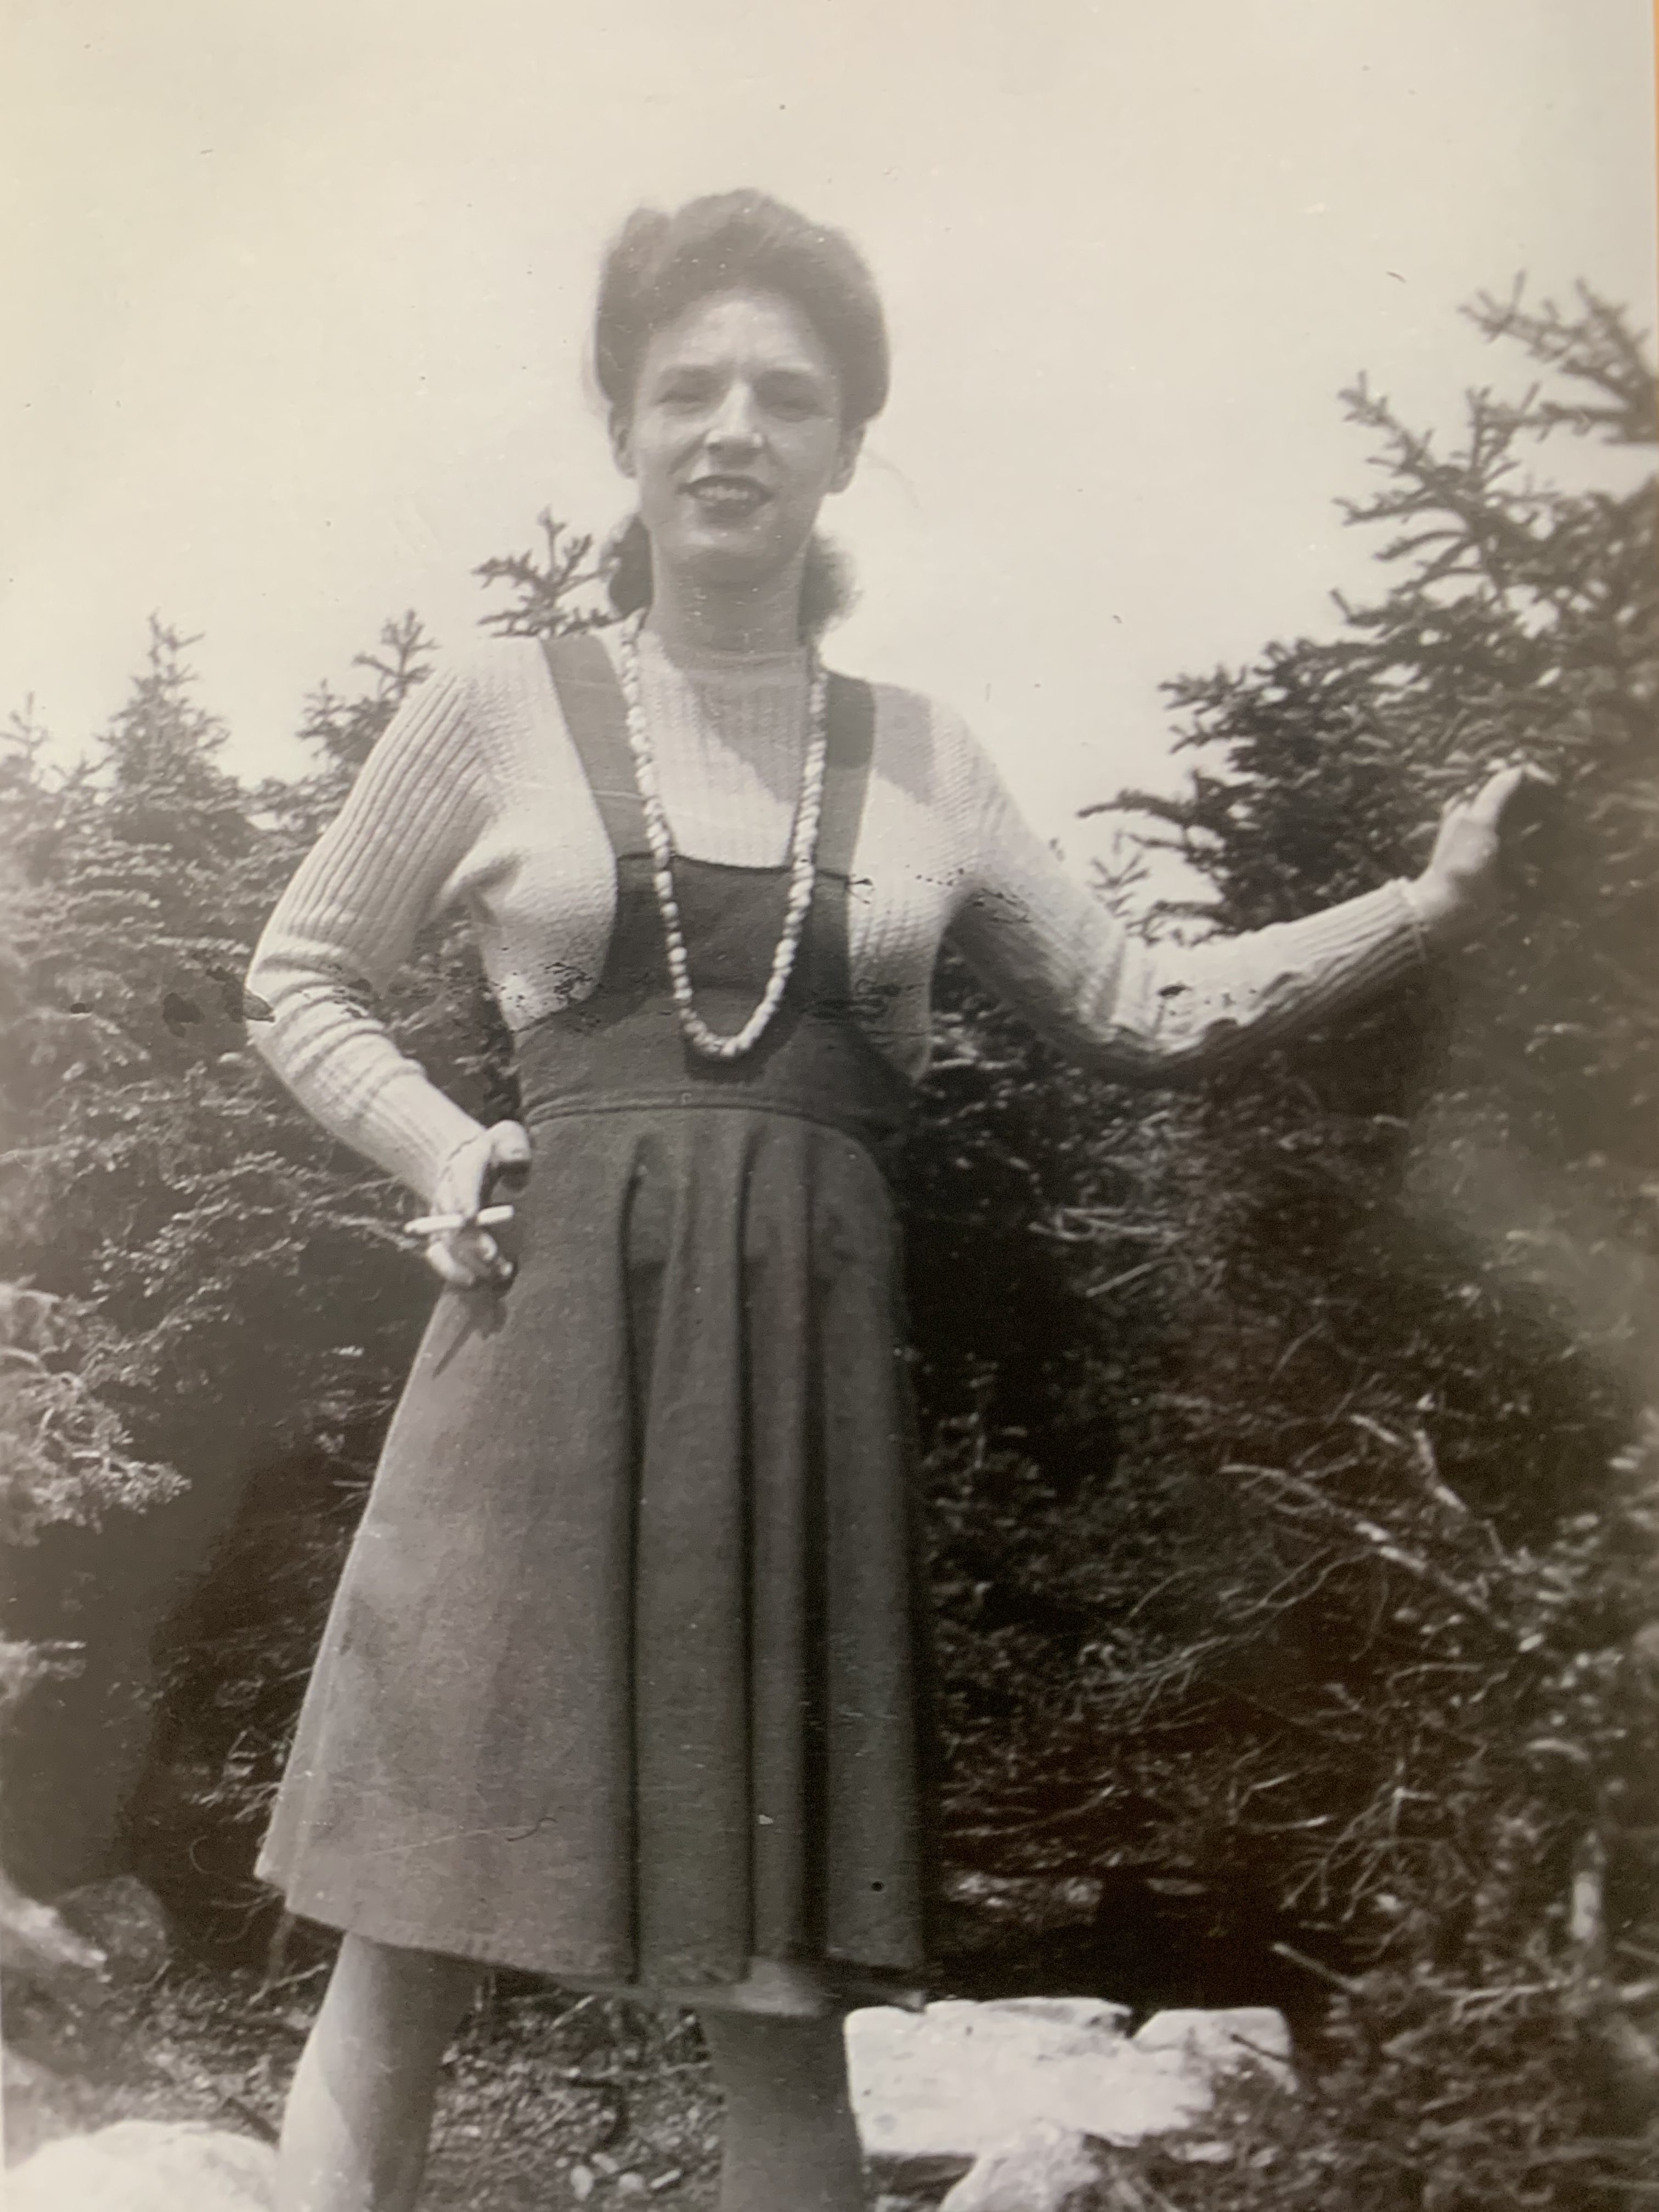 Eileen Penney of Humbermouth, in the early 1940s. Submitted by Terry Gullage